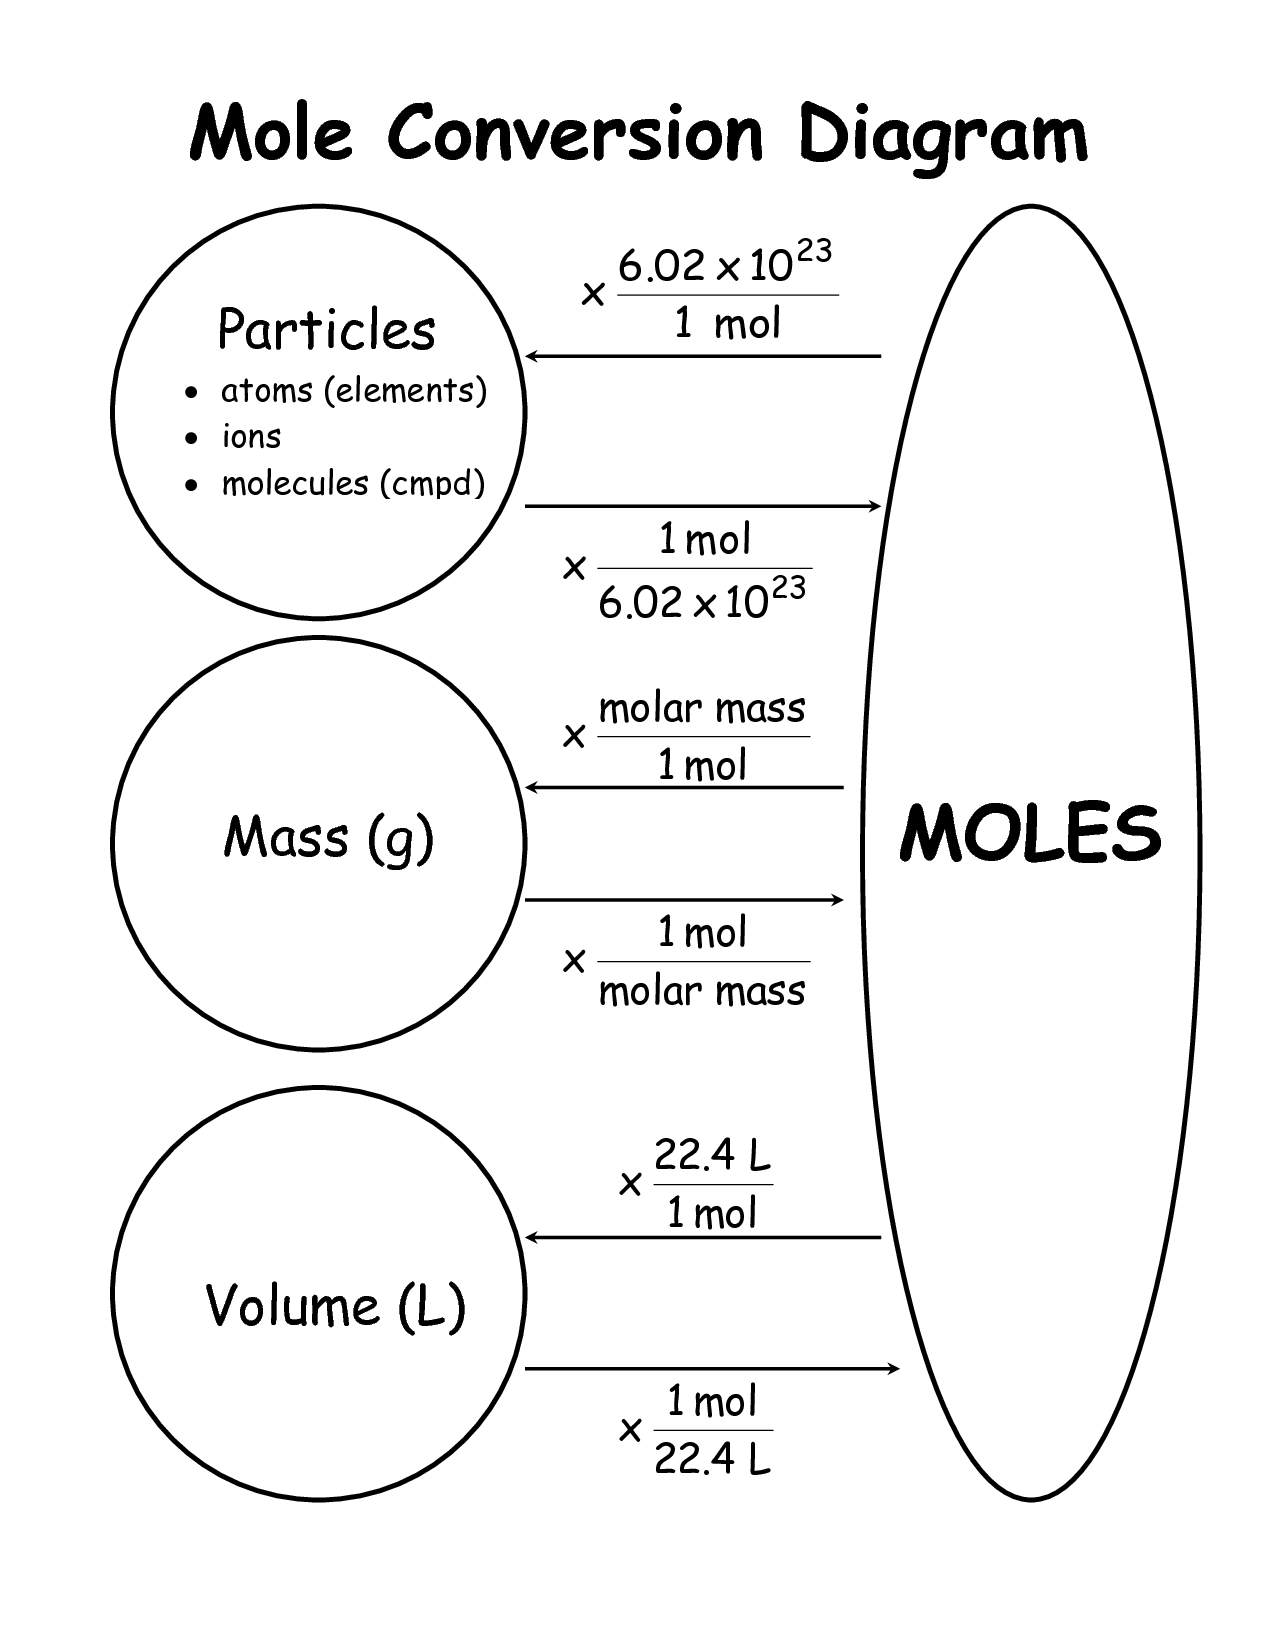 worksheet Mole Conversion Worksheet best 25 mole conversion ideas on pinterest to moles atoms and chemistry